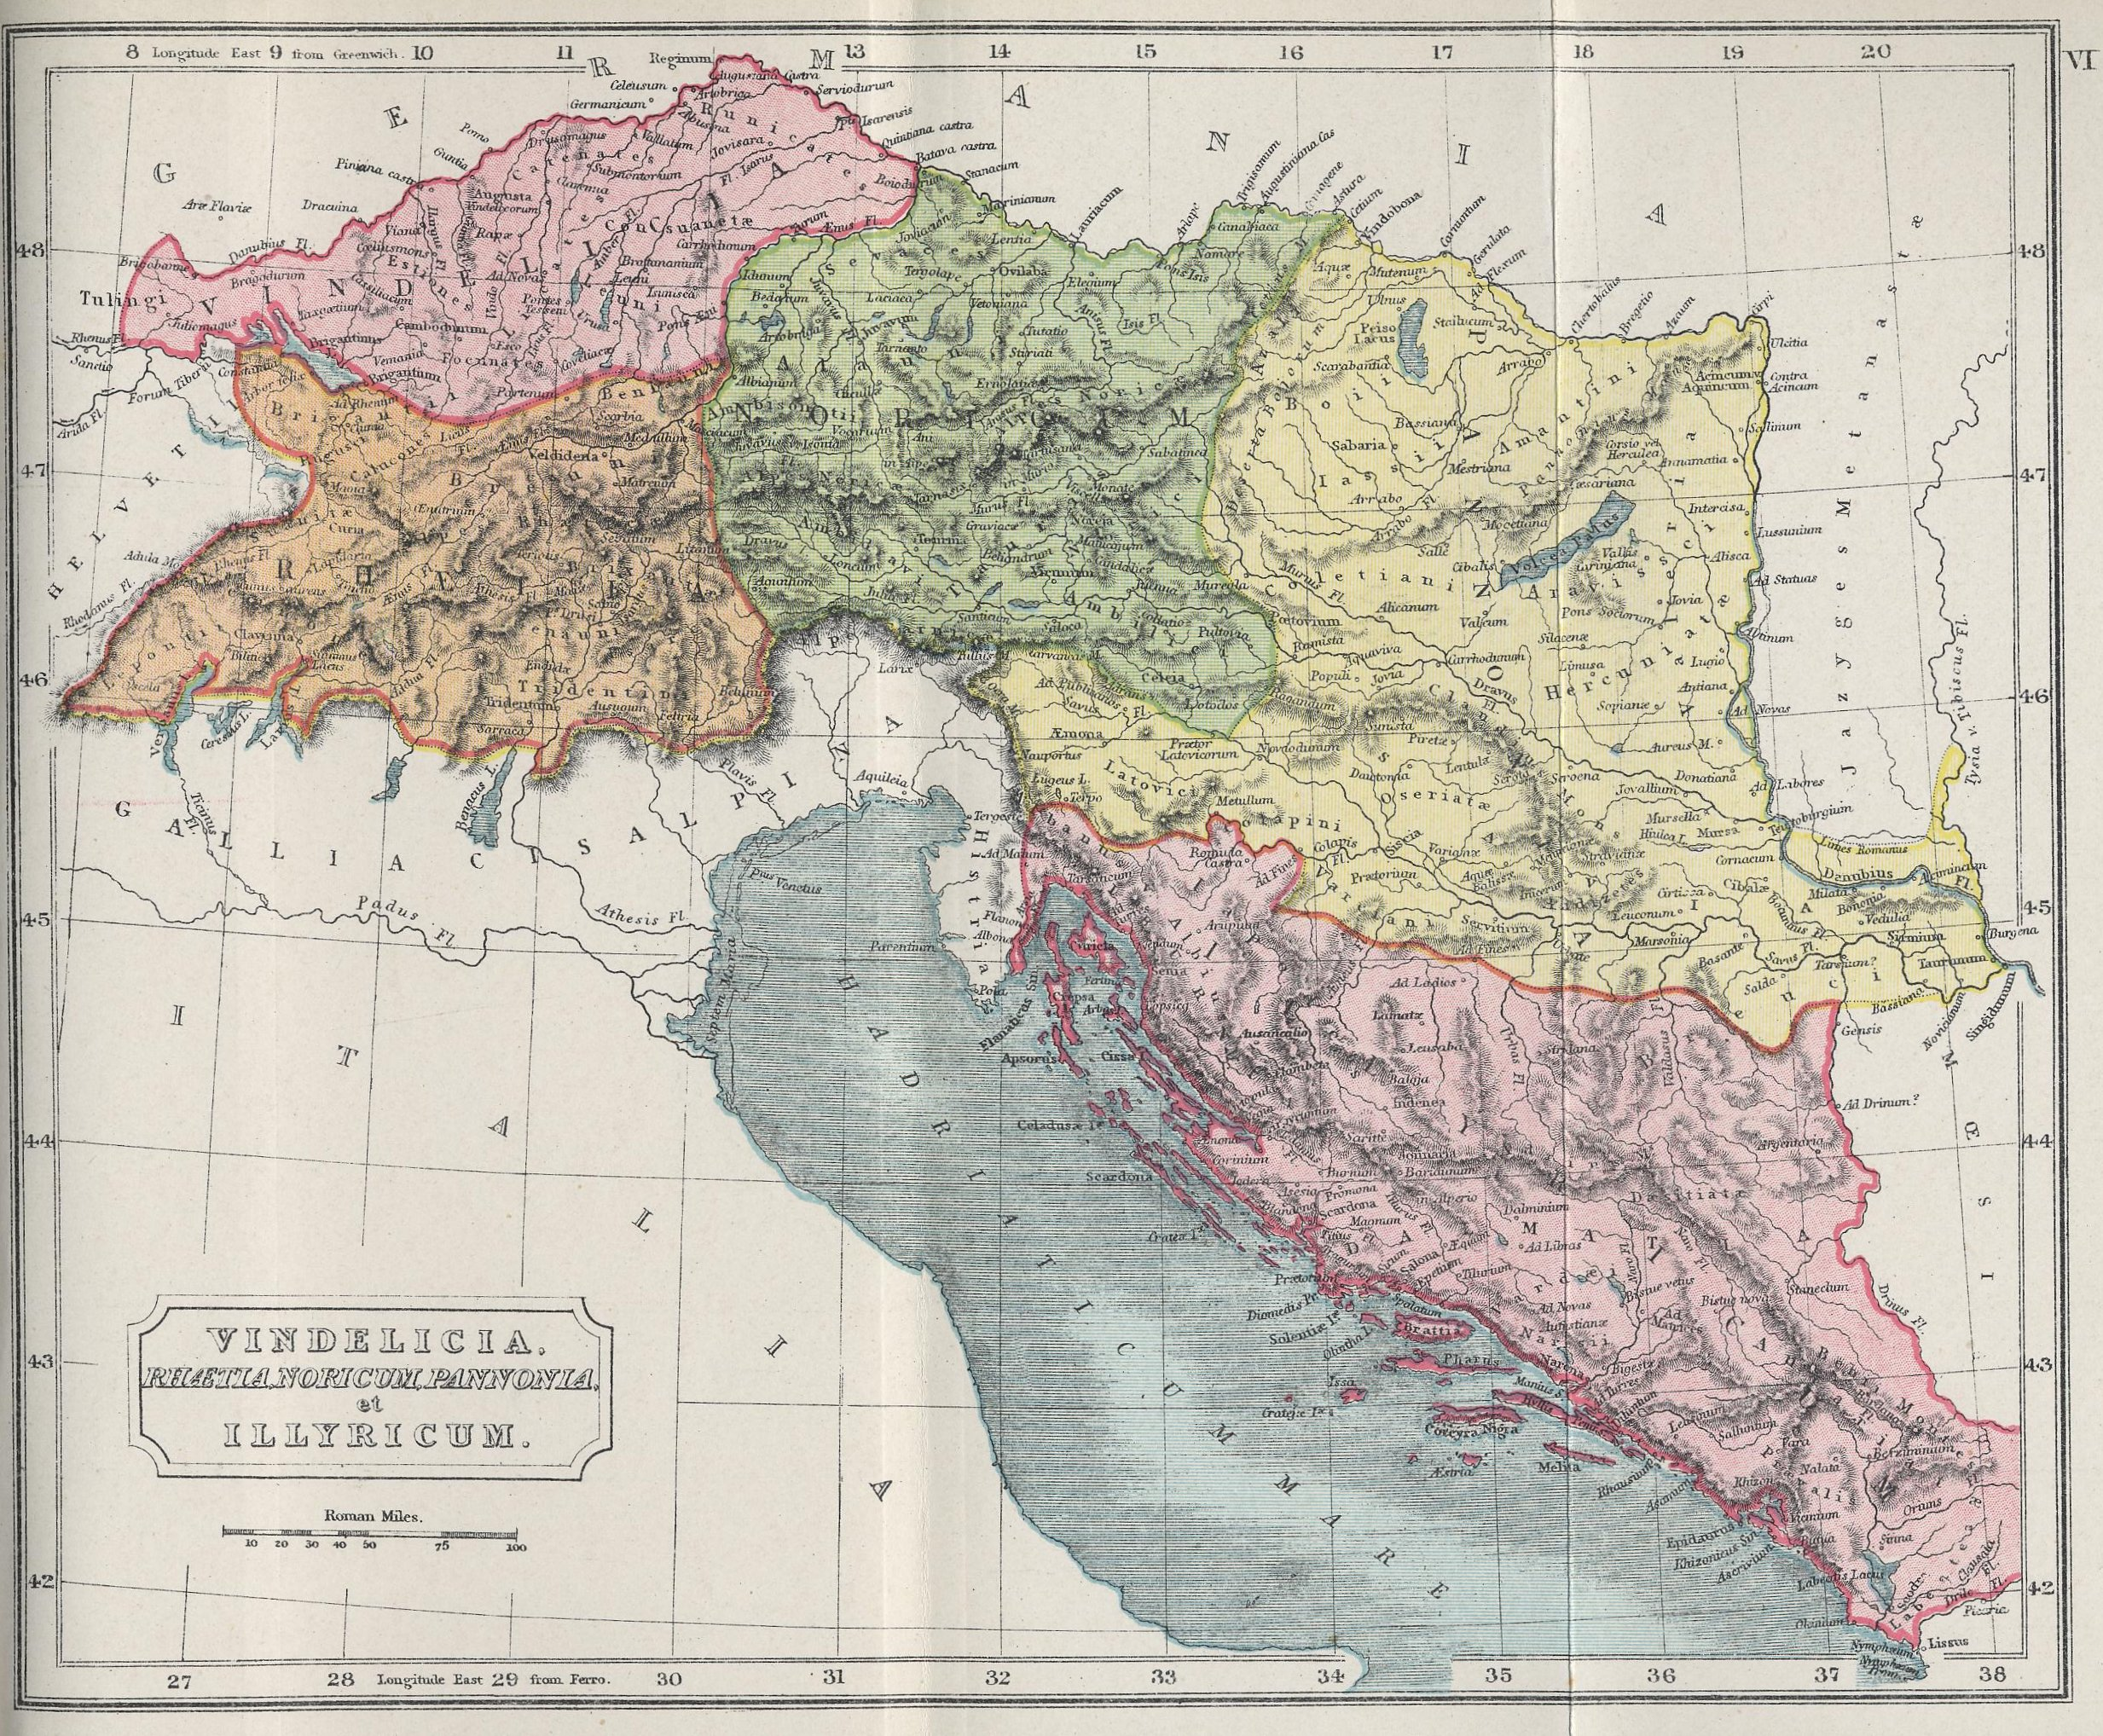 Map of Alpine Region and Western Balkans 70 BC - AD 180